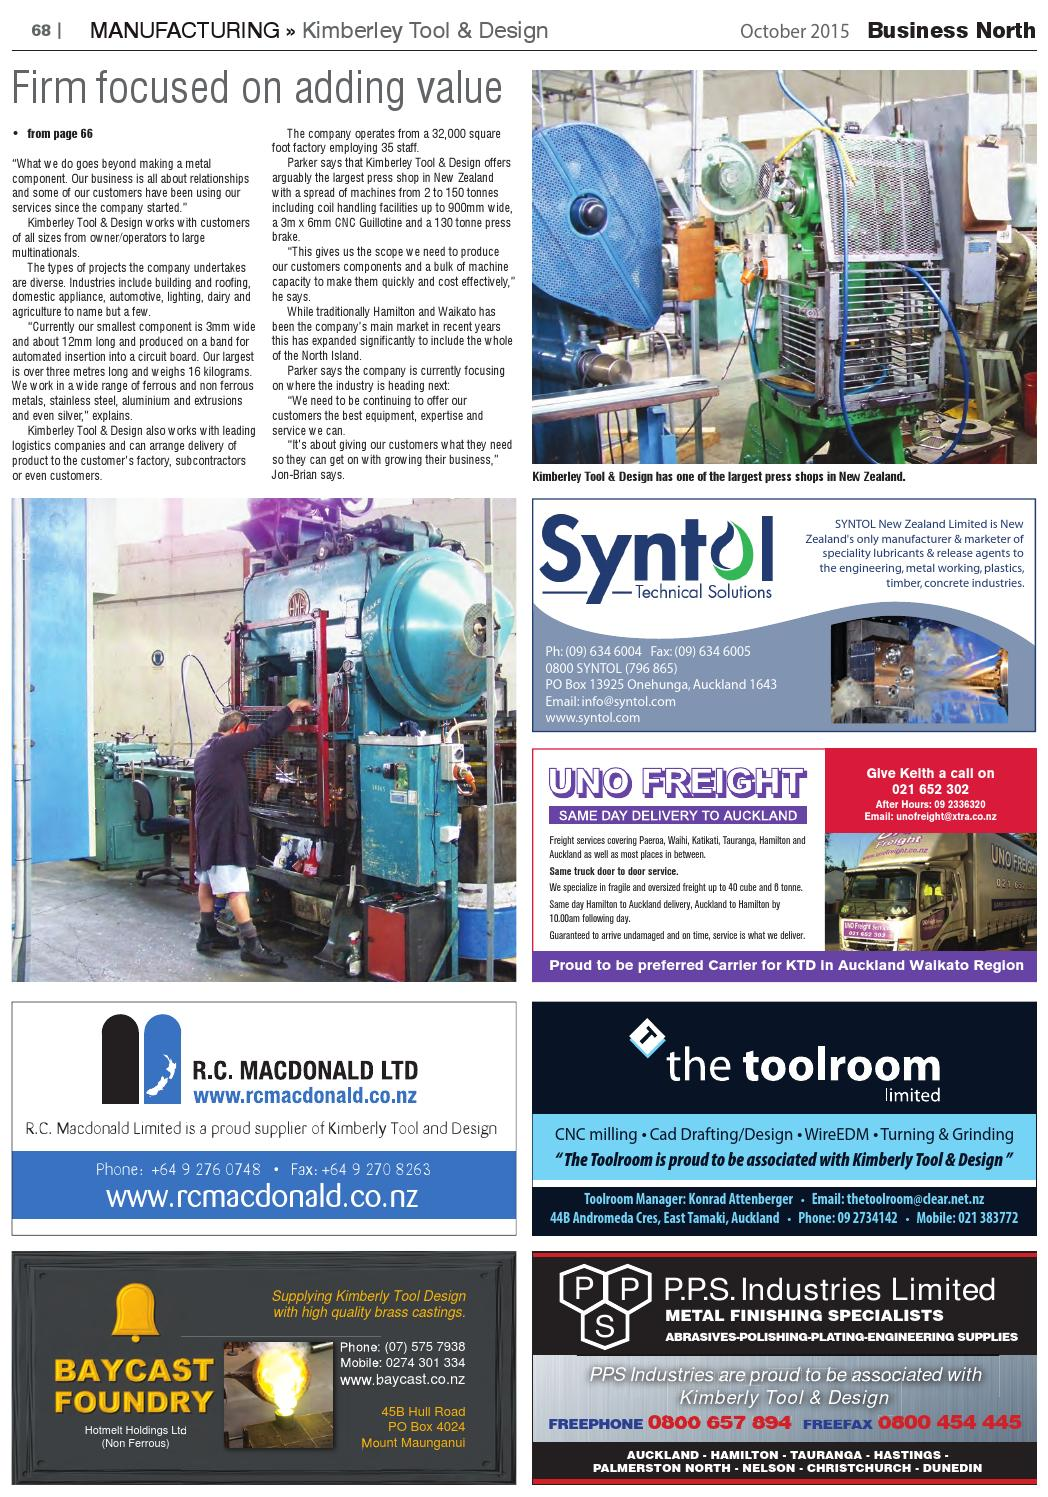 Business North October by Waterford Press Limited - issuu